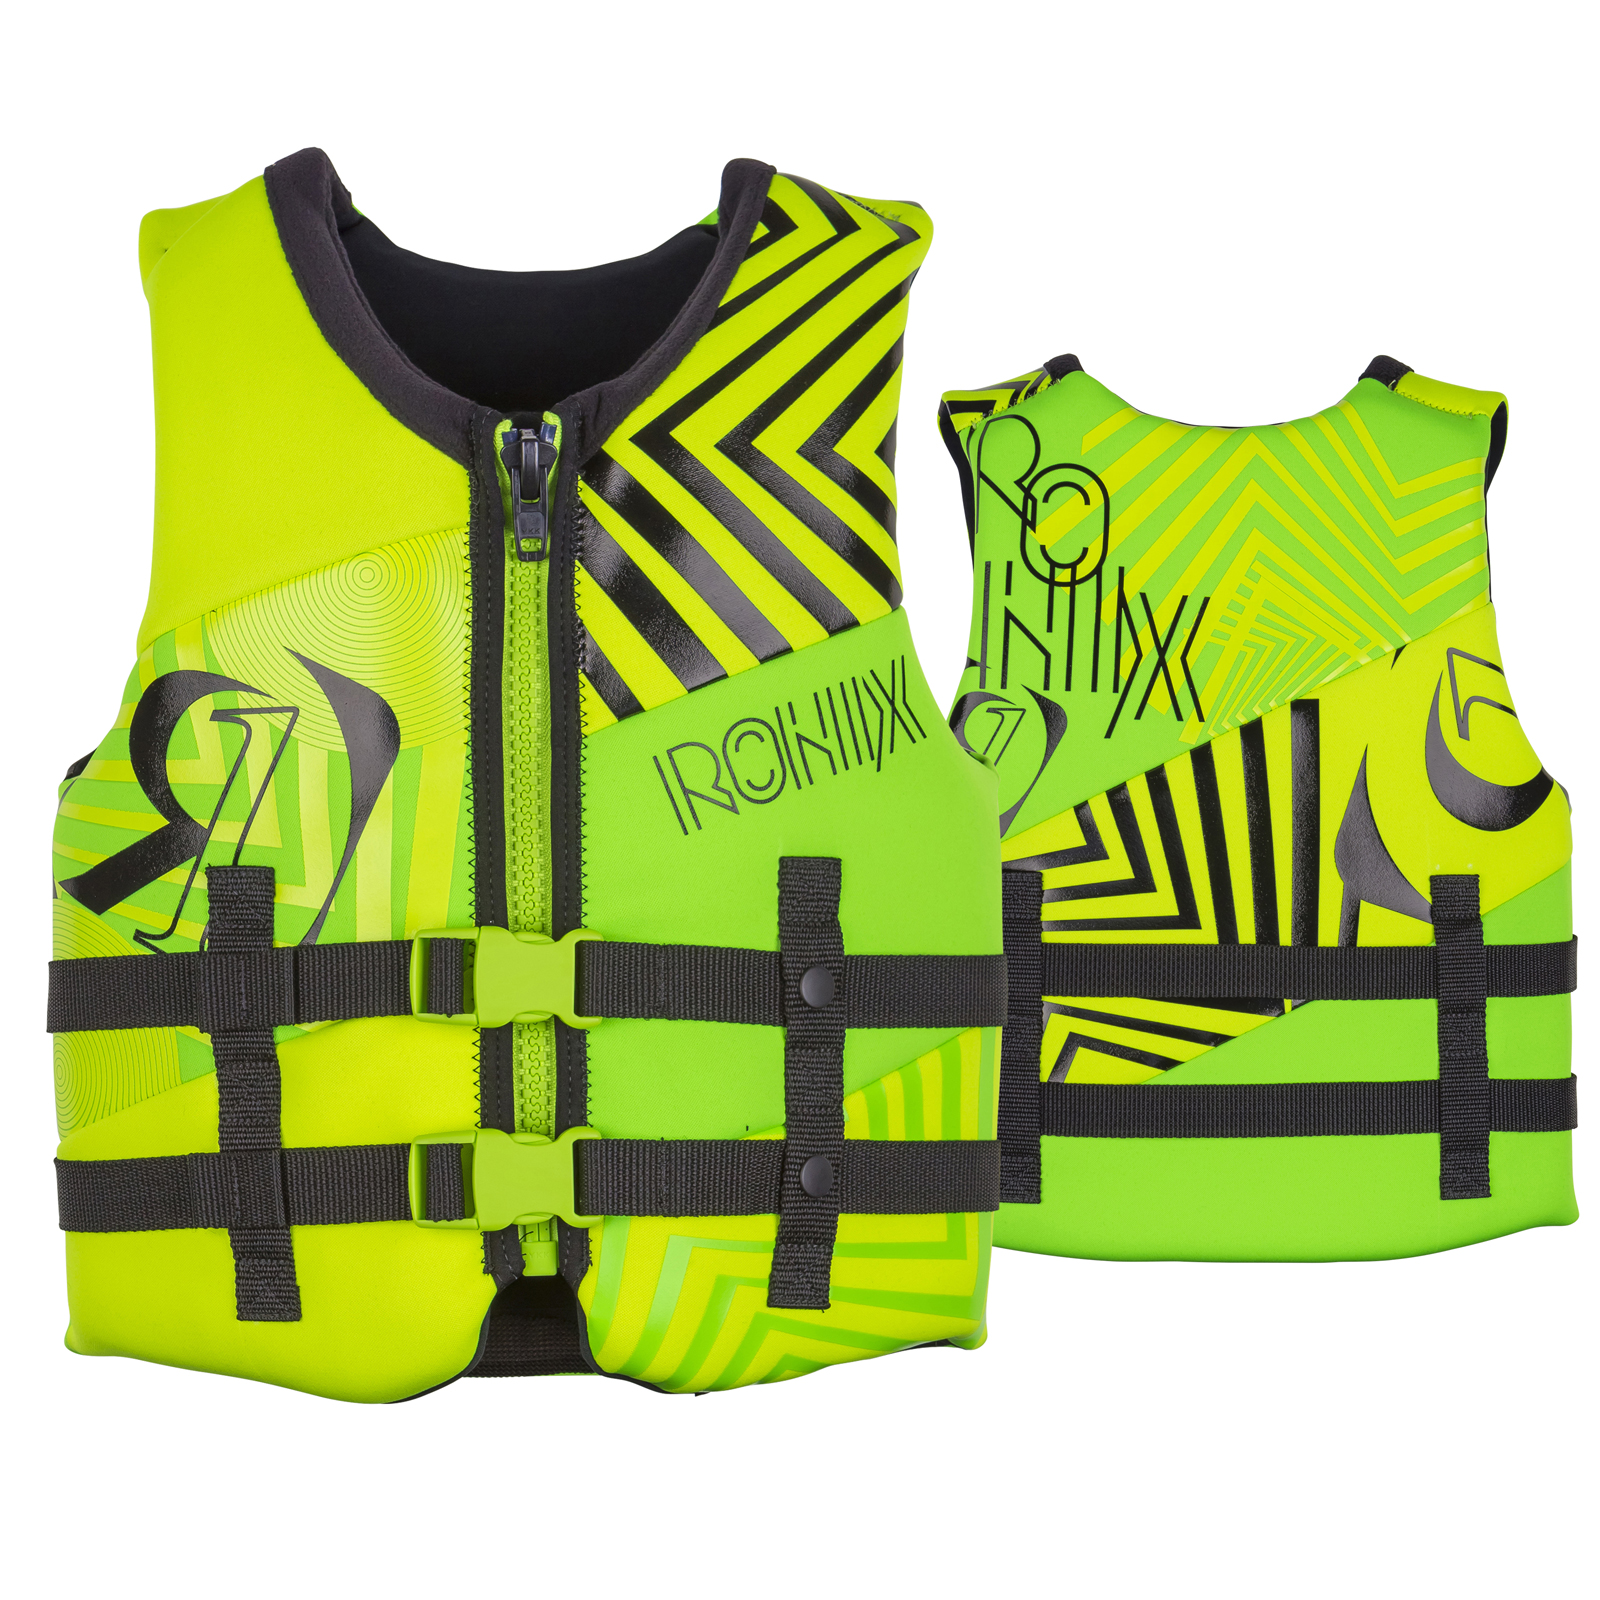 VISION BOY'S YOUTH VEST RONIX 2017